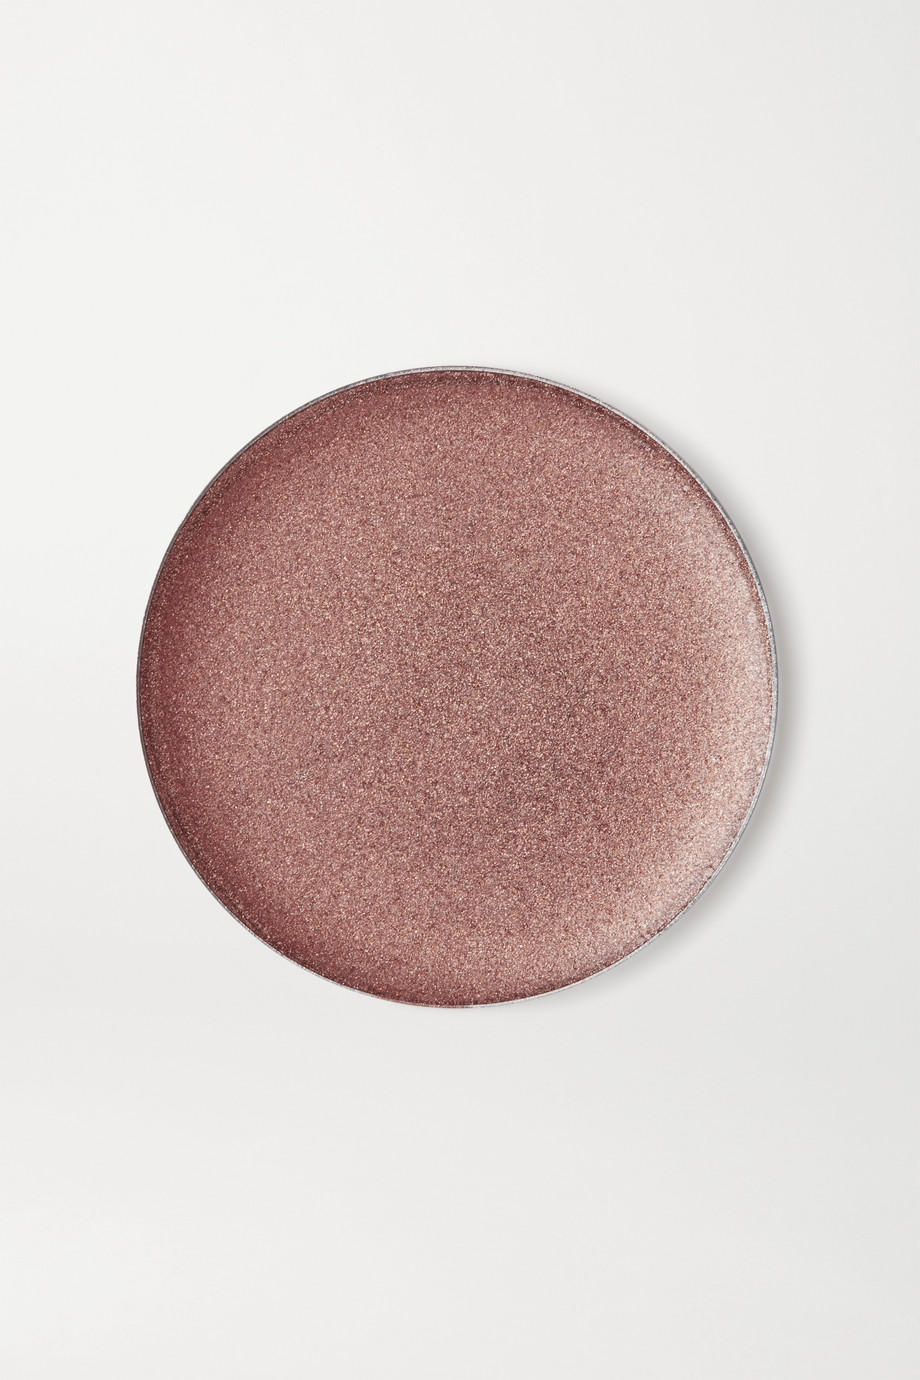 KJAER WEIS Cream Eye Shadow Refill - Gorgeous